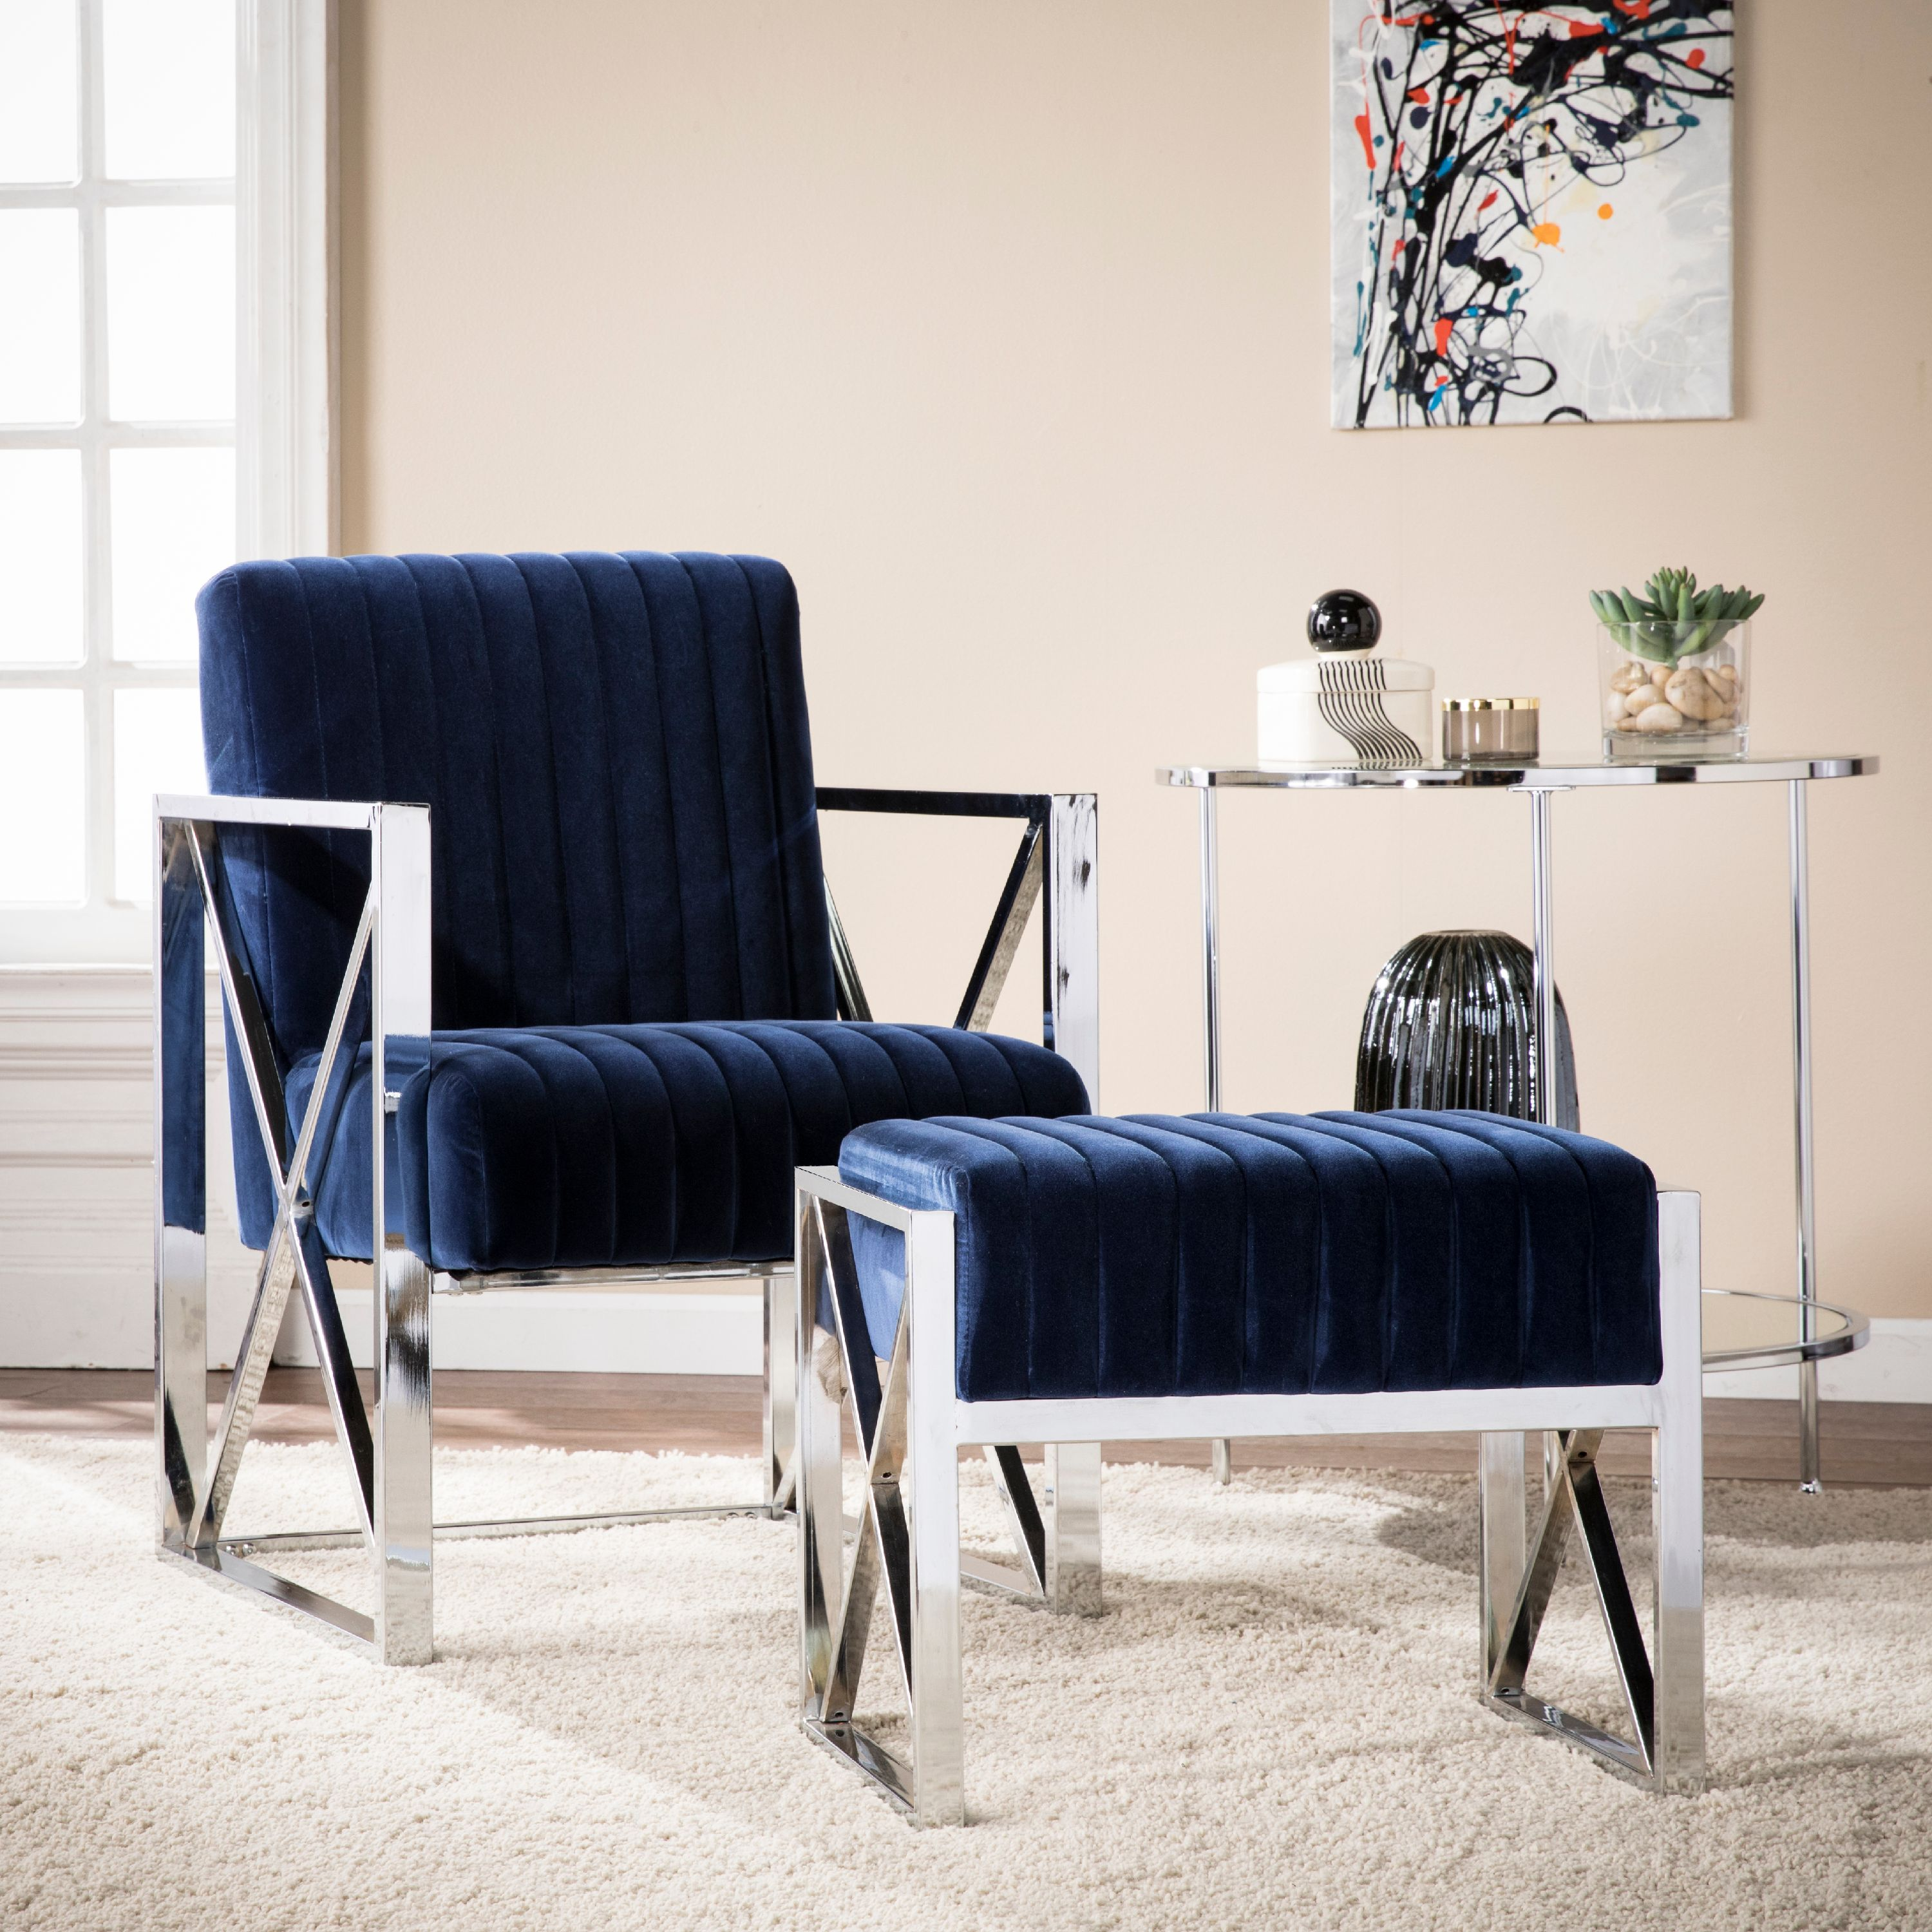 Southern Enterprises Ellison Velveteen Accent Chair, Glam Style, Deep Blue